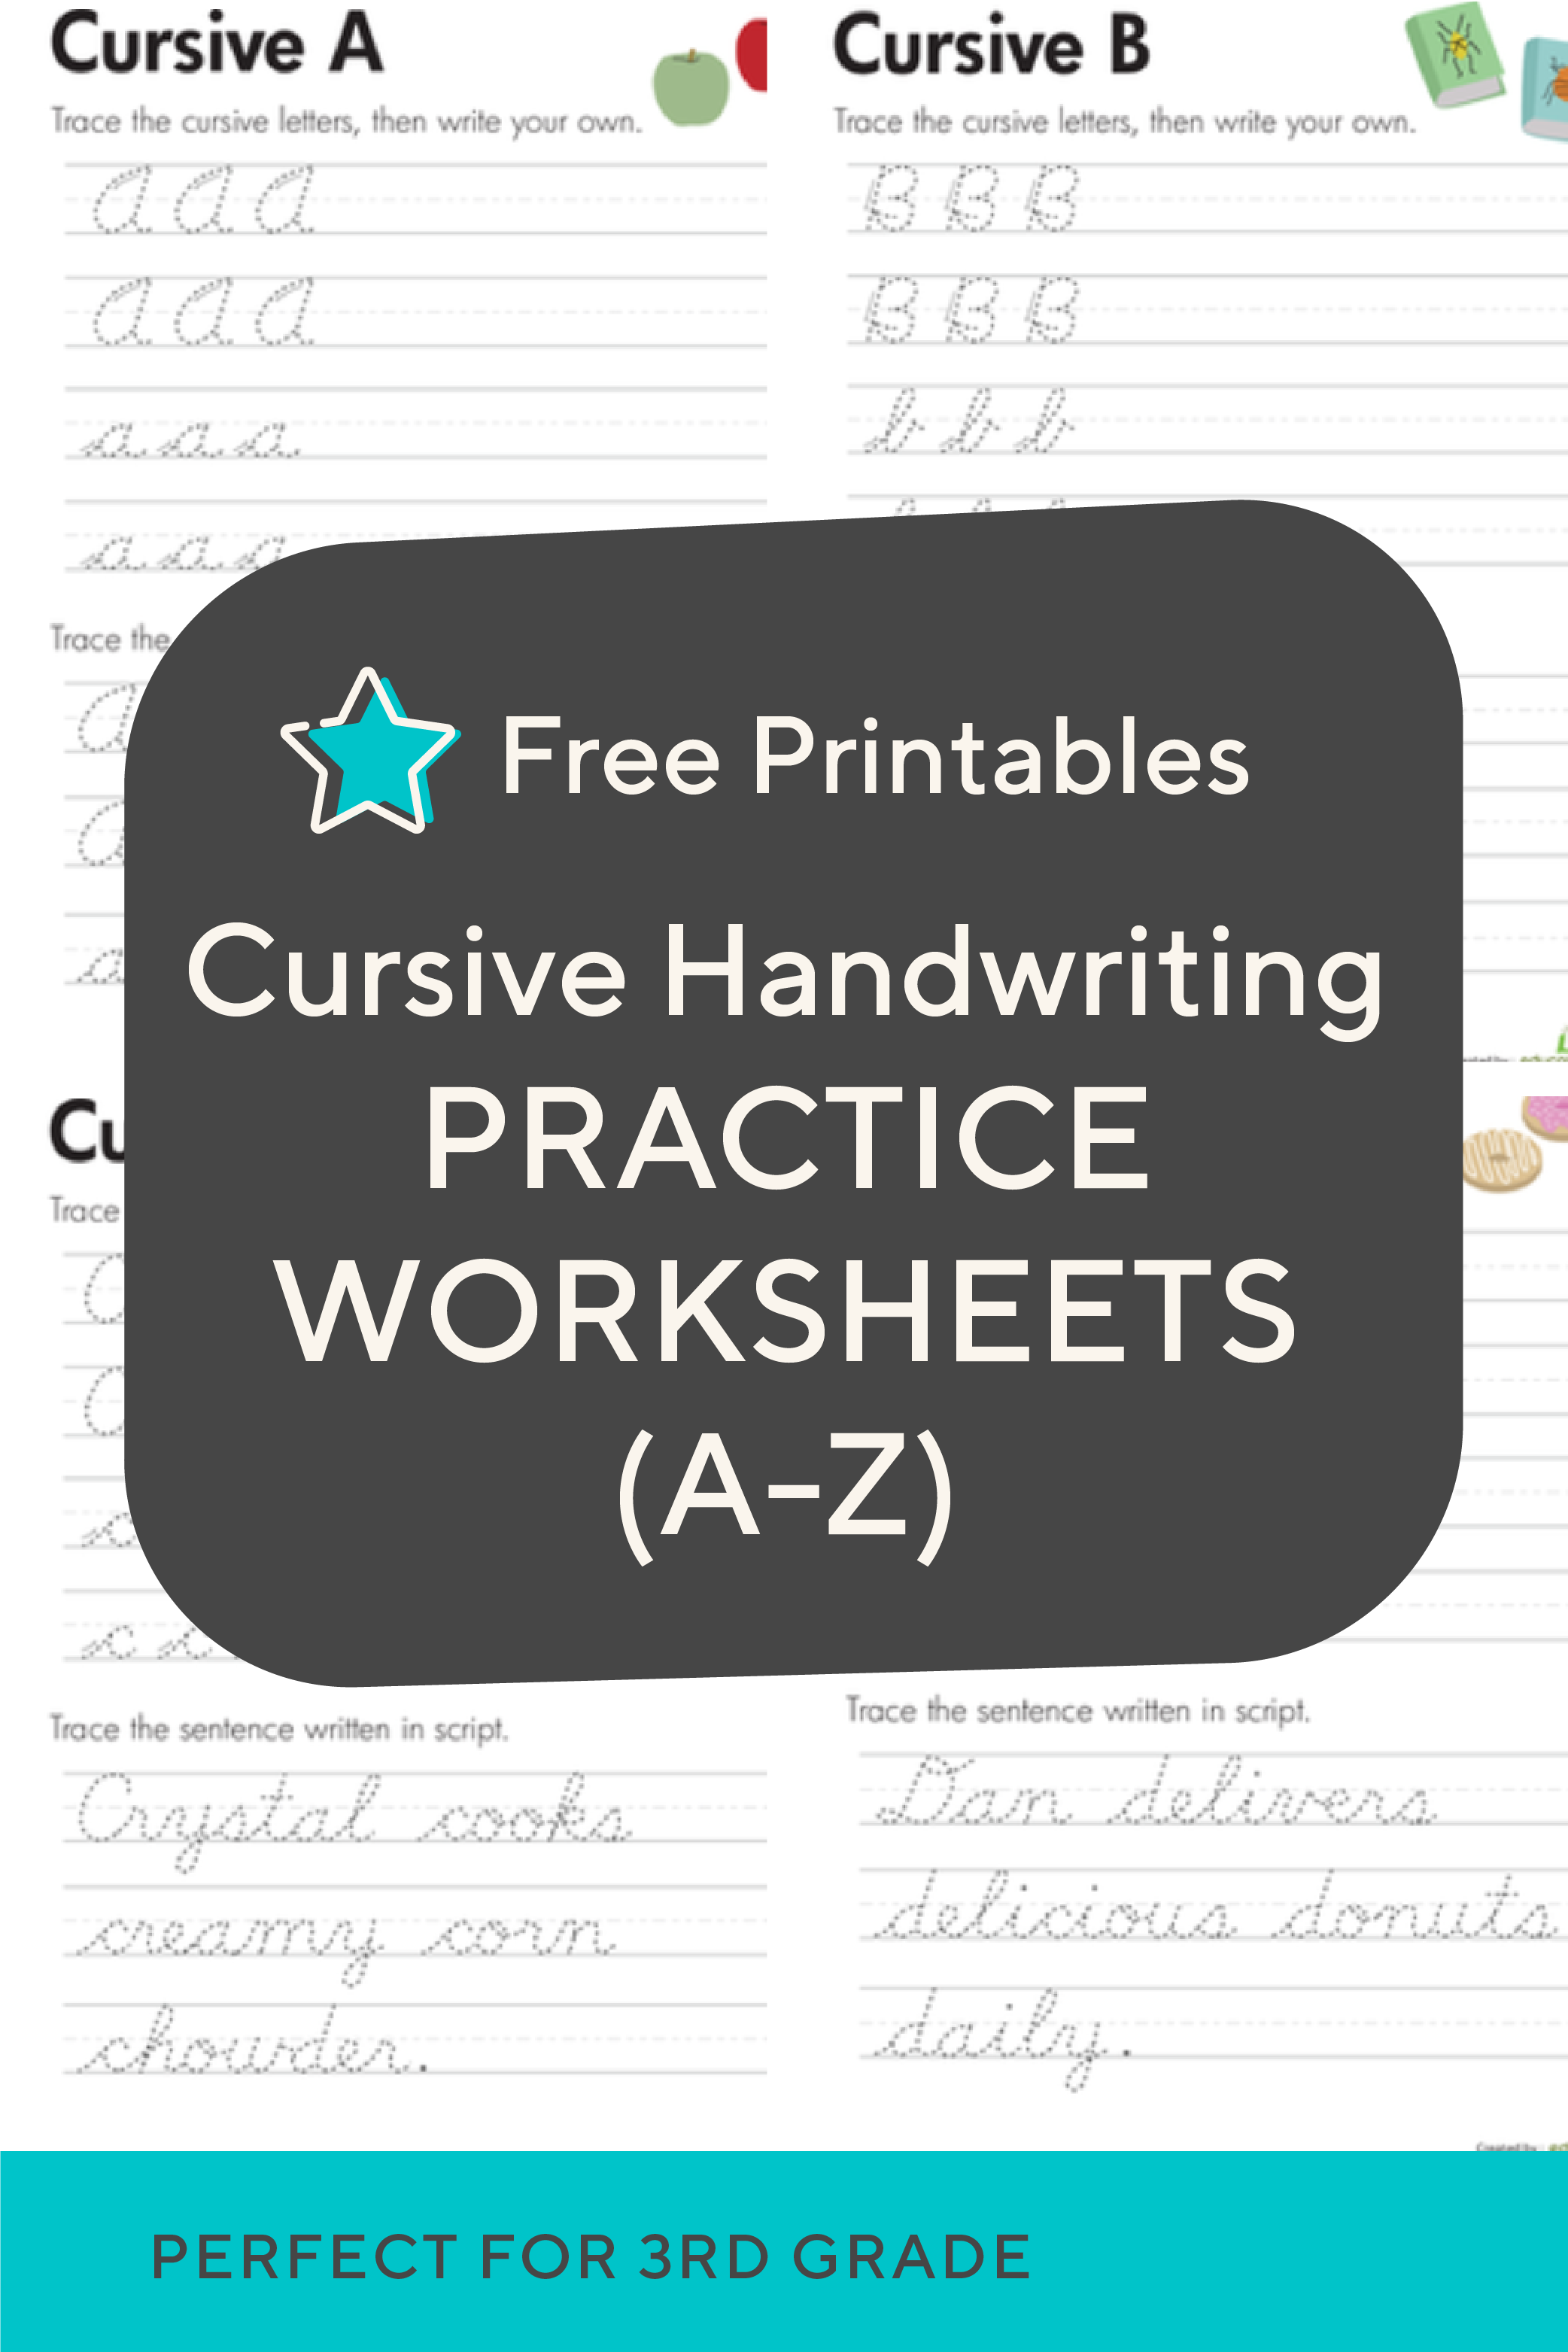 Practice Cursive Letters A Z With Free Cursive Handwriting Worksheets These A Cursive Handwriting Practice Cursive Handwriting Handwriting Practice Worksheets [ 3126 x 2084 Pixel ]